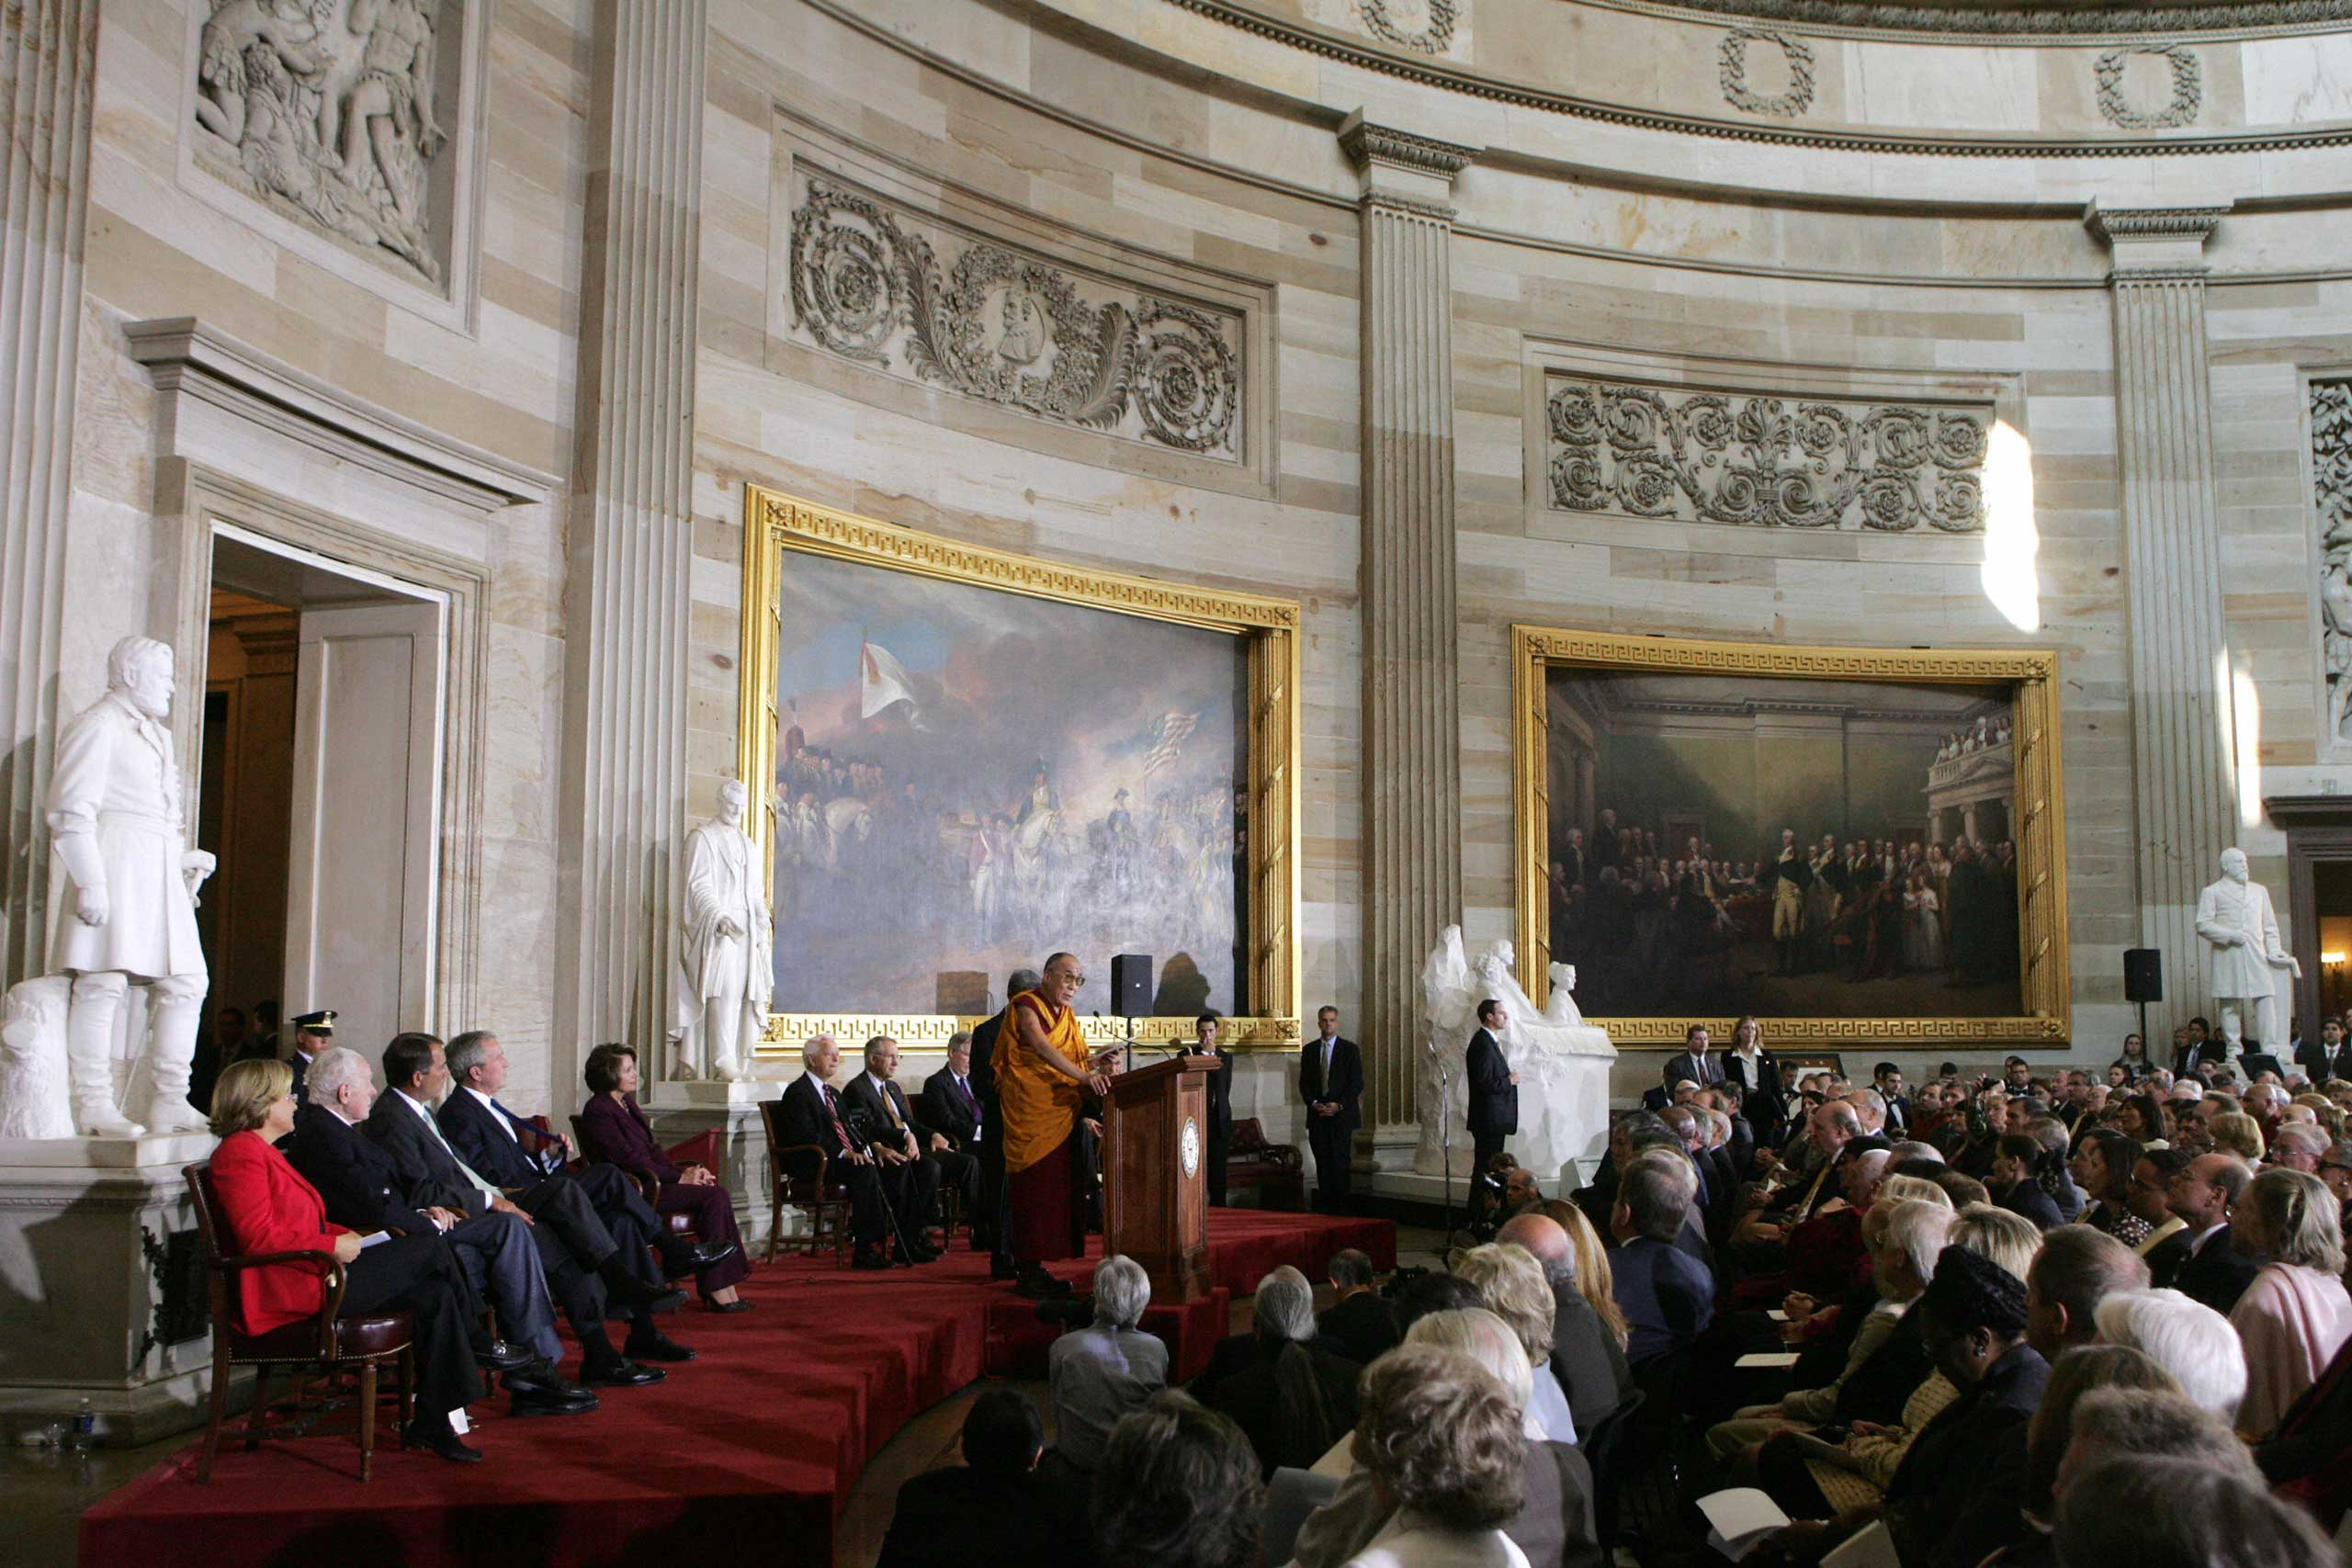 The Dalai Lama speaks during a ceremony to present him with the Congressional Gold Medal in Washington, D.C., in October 2007.